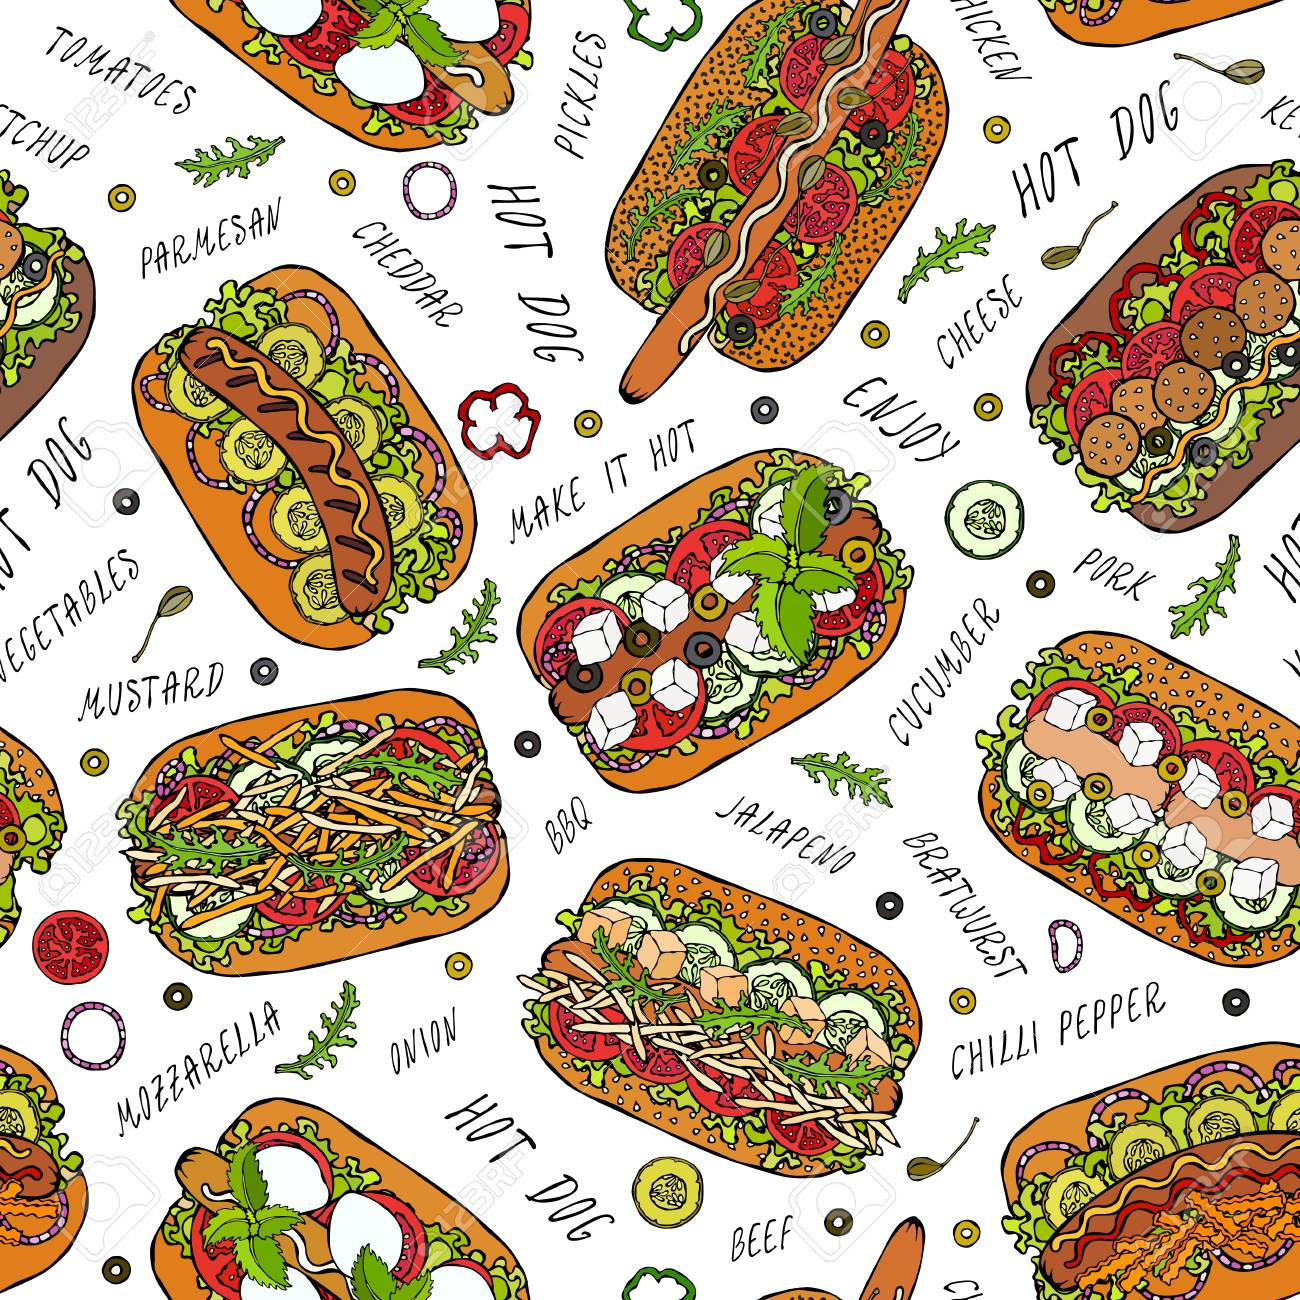 Hot Dog and Lettering Seamless Endless Pattern. Many Ingredients. Restaurant or Cafe Menu Background. Street Fast Food Collection. Realistic Hand Drawn High Quality Vector Illustration. Doodle Style - 114980944